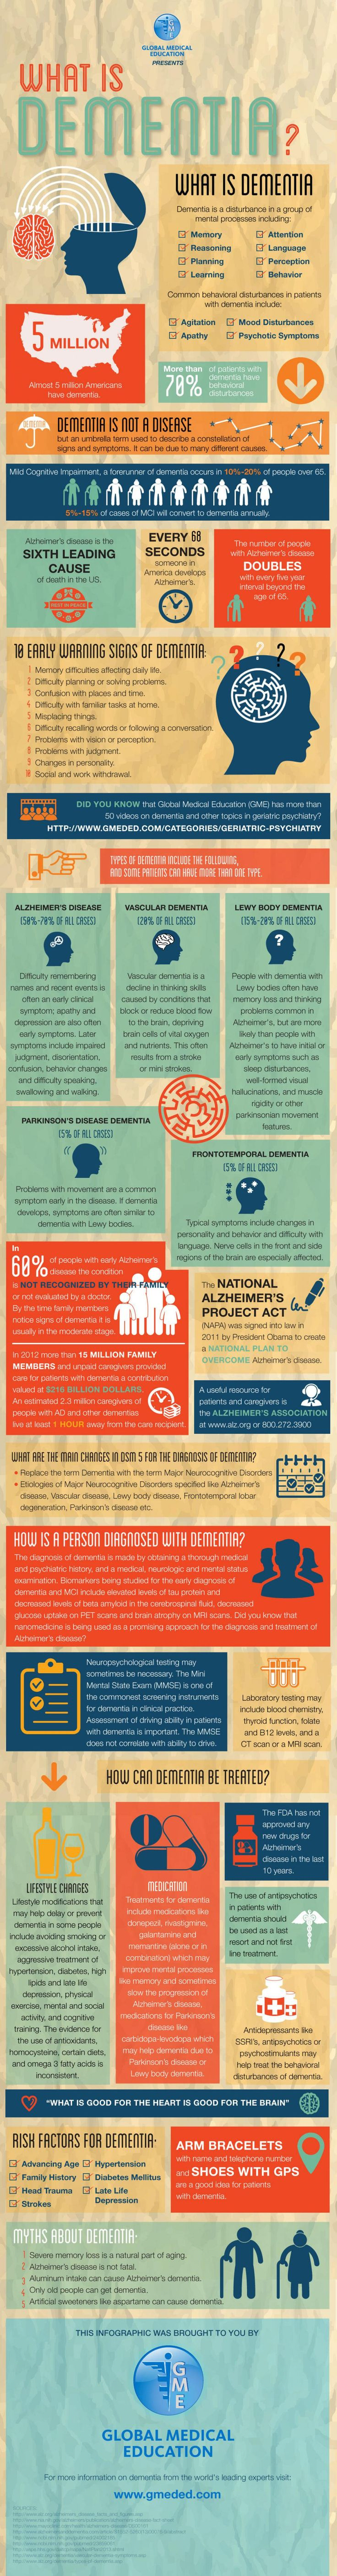 This infographic discusses Dementia and the many possible manifestations of it: Lewy Body Dementia, Alzheimer's Disease, Vascular Dementia, Frontotemporal Dementia, and Parkinson's Disease Dementia.